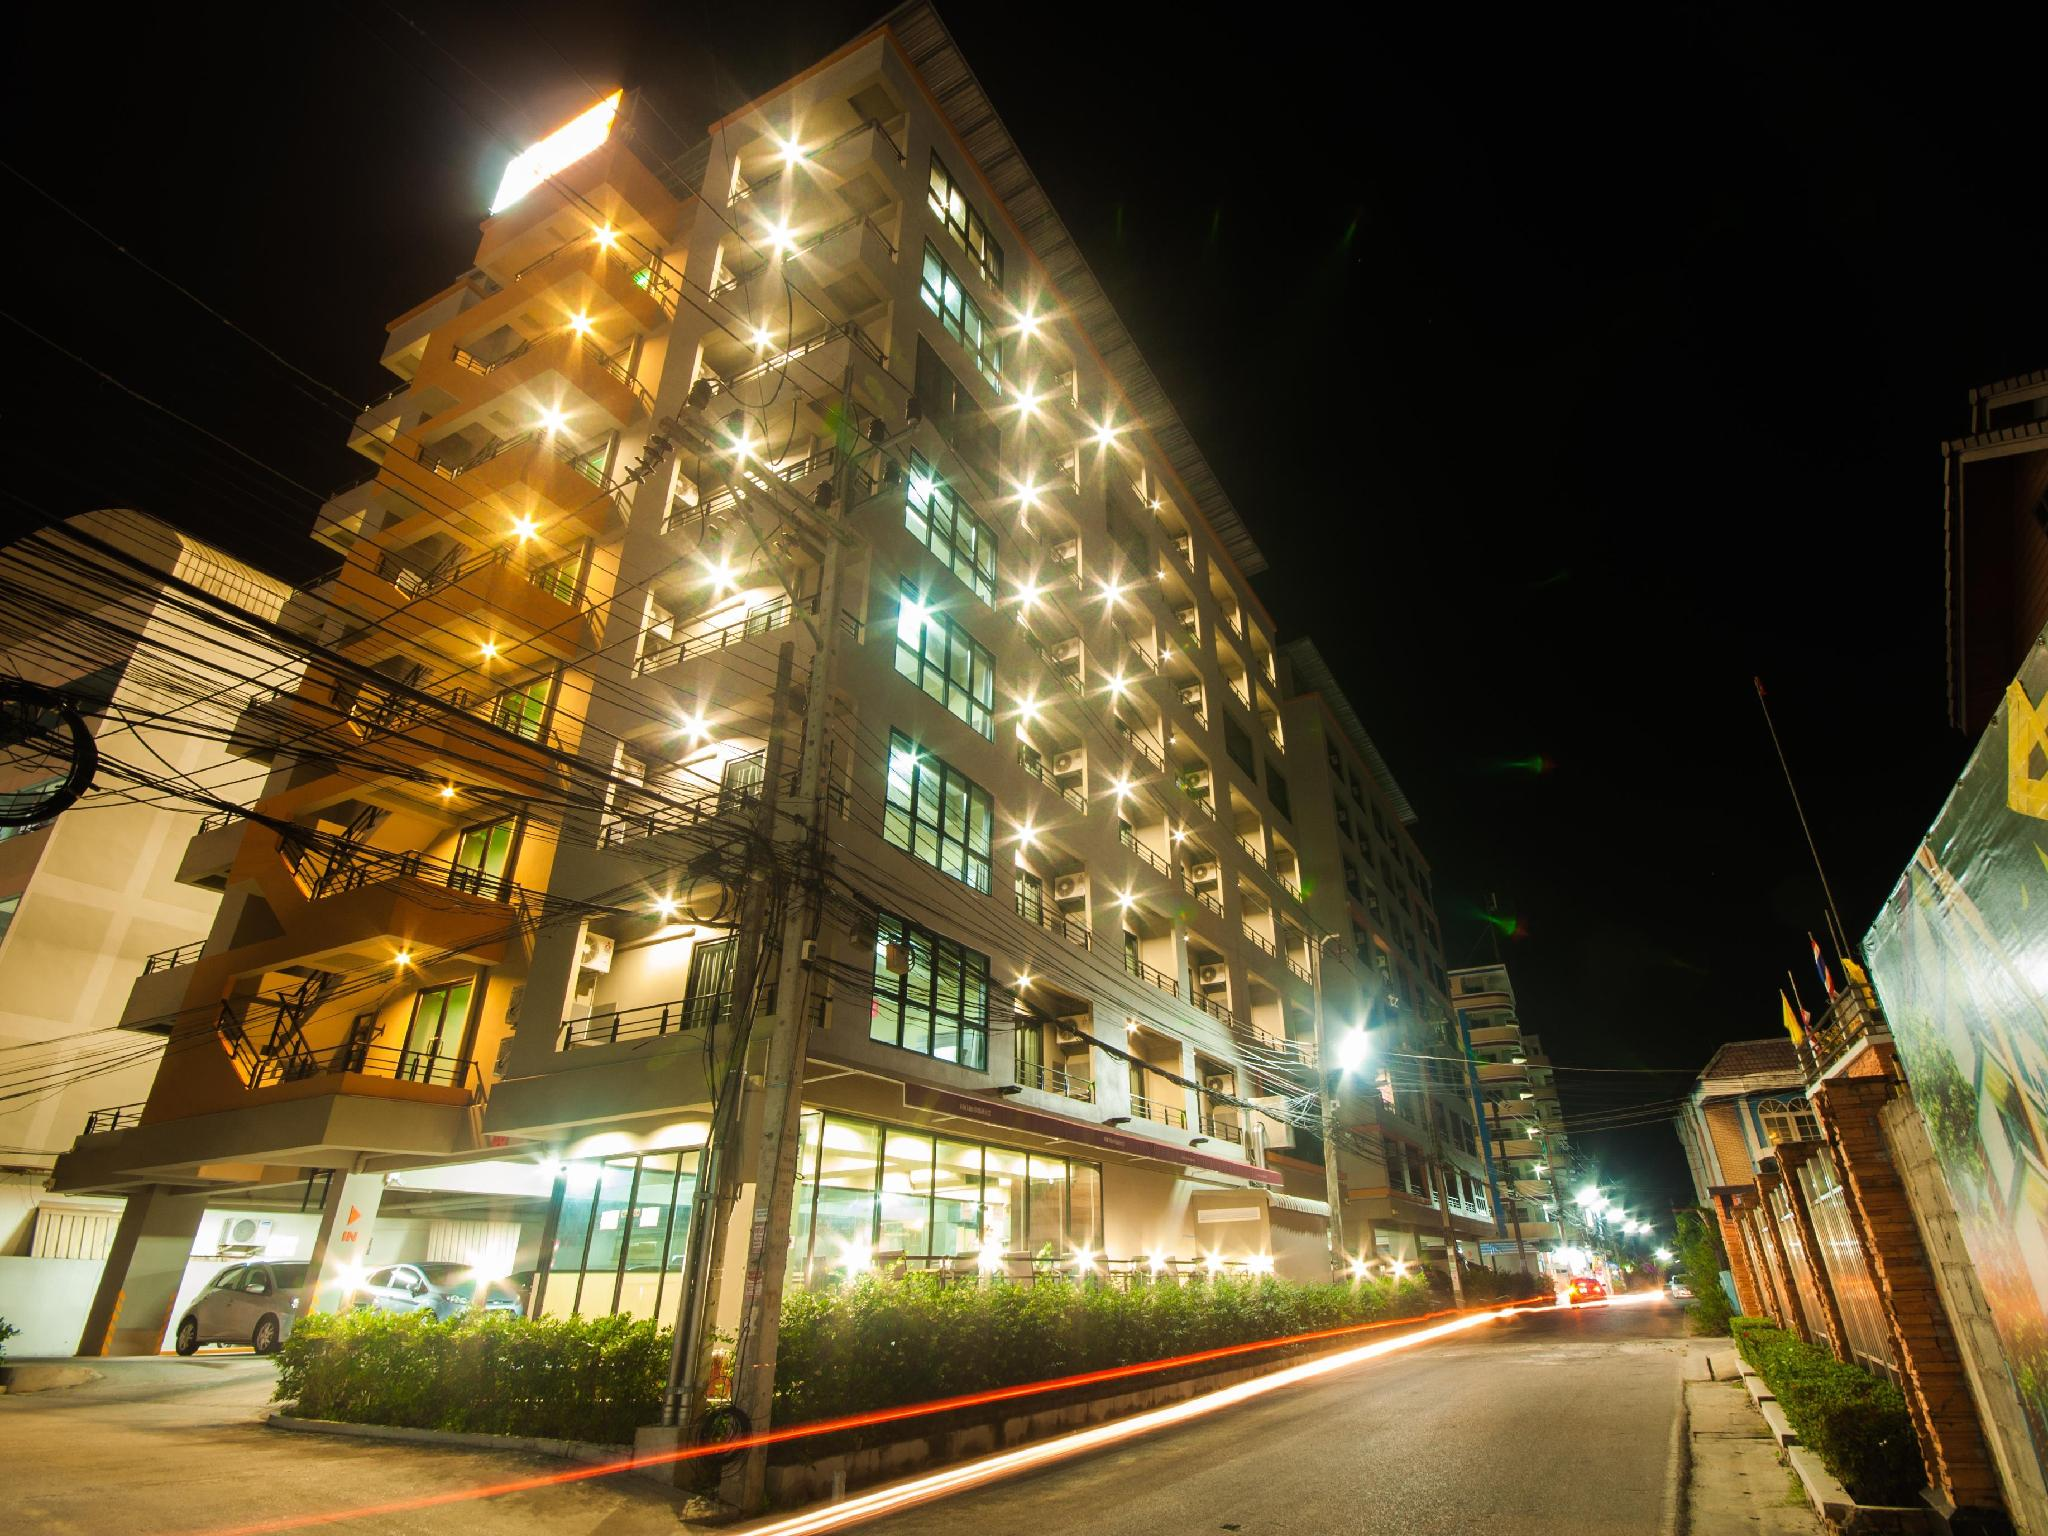 WSotel Hotel & Serviced Apartment - Songkhla